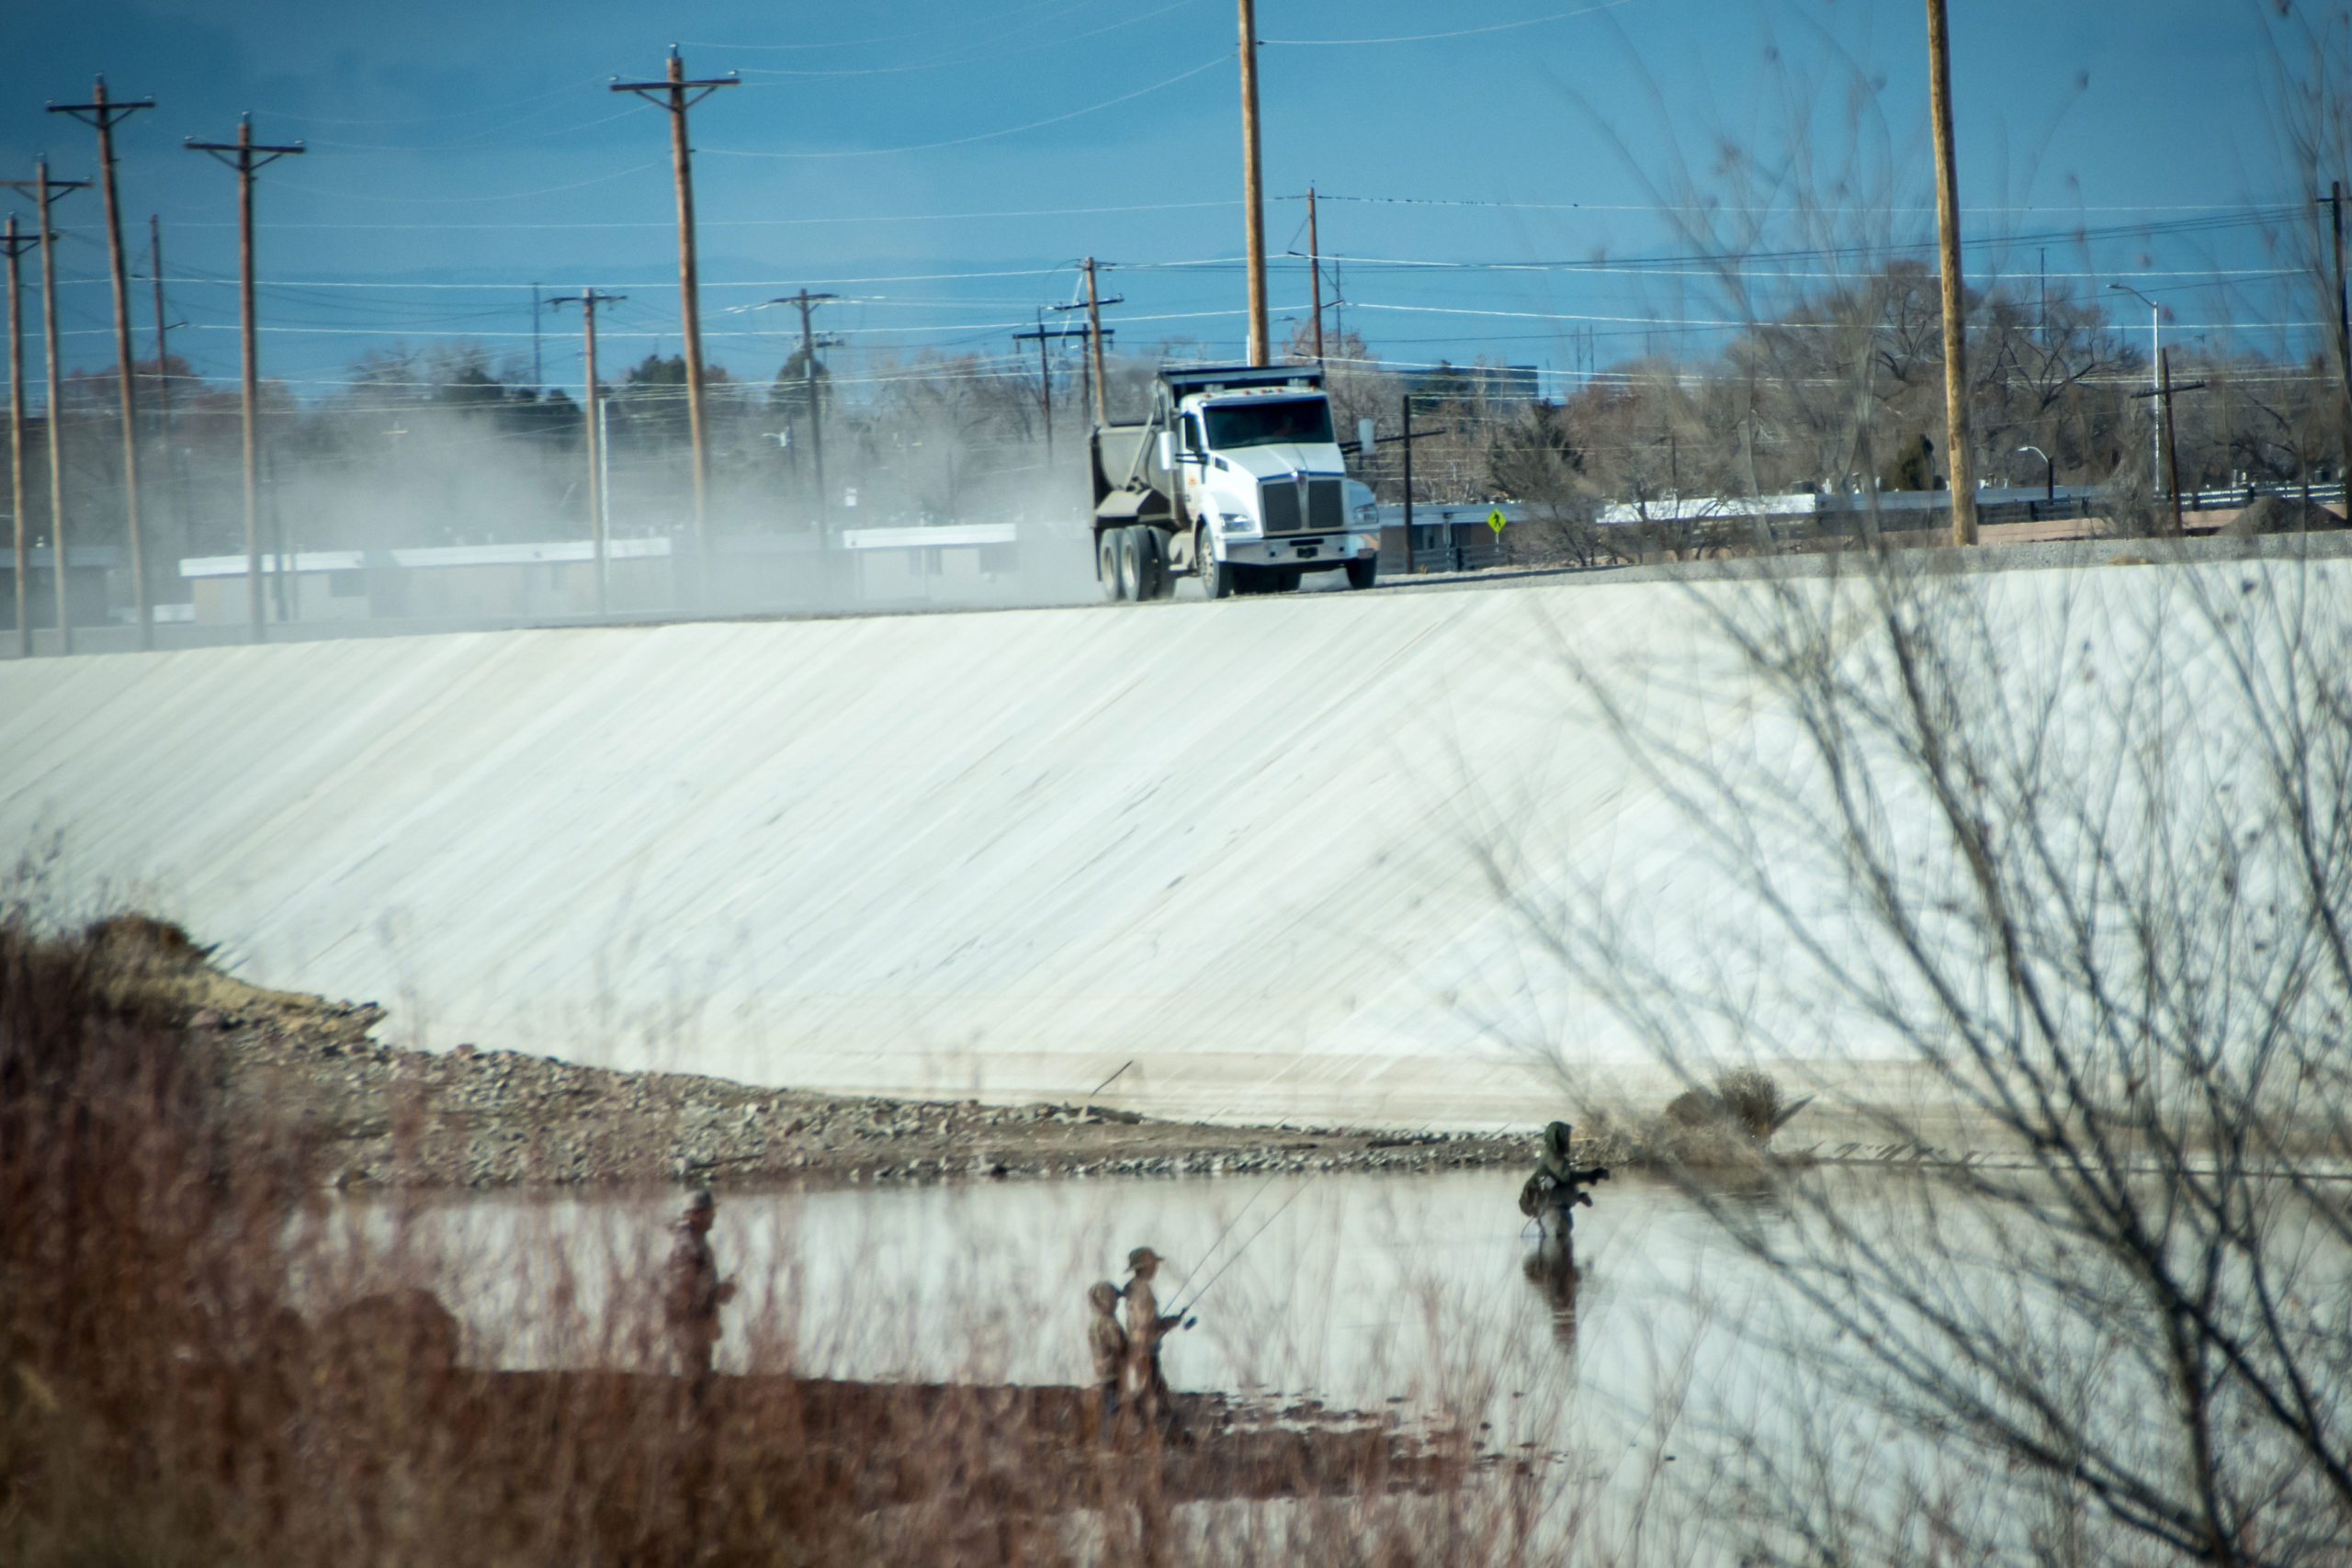 A work truck, part of the last phase of reconstruction, rumbles across the Arkansas River Levee in Pueblo, Colo., Nov. 29, 2019.